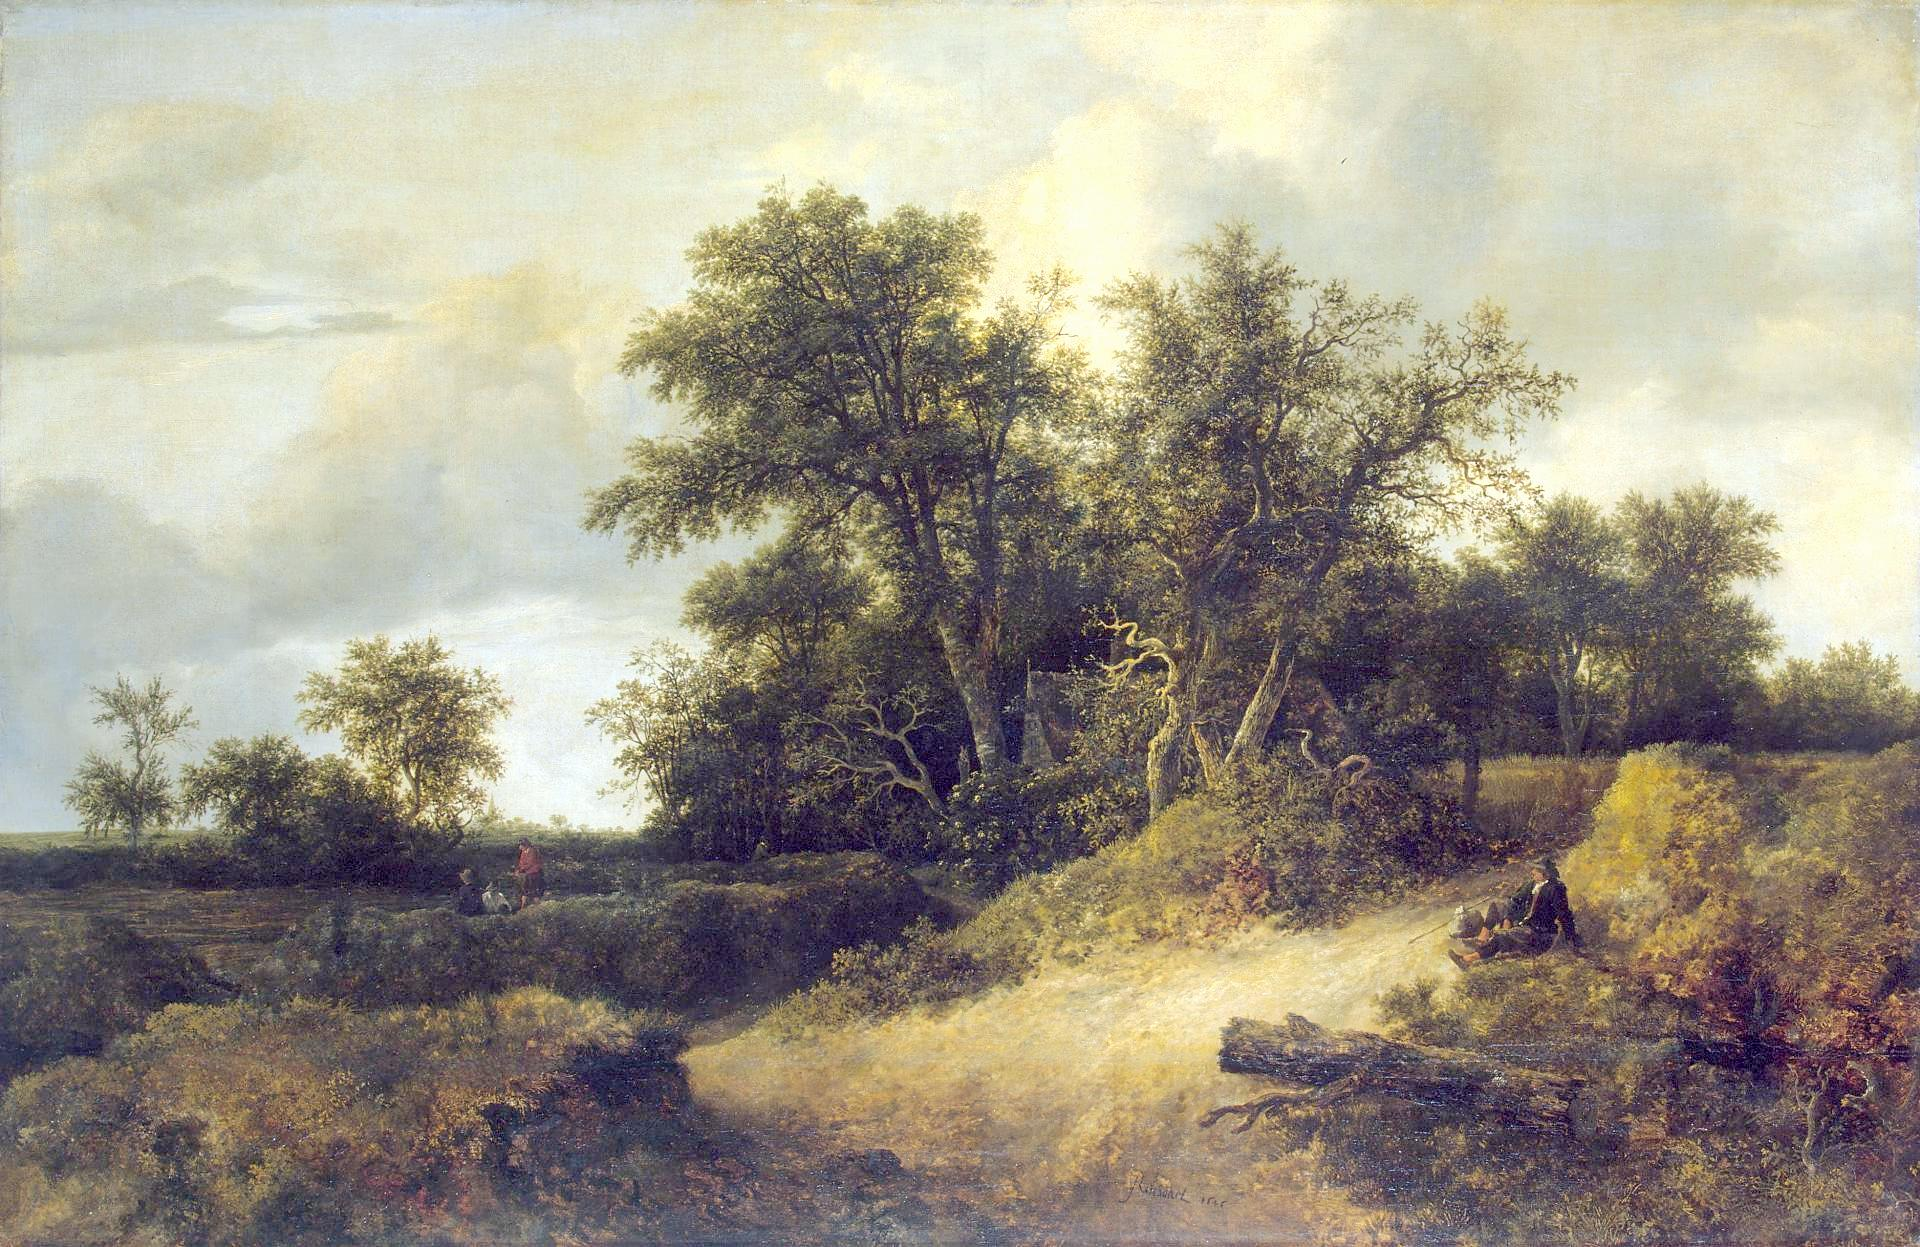 Jacob van Ruisdael – The Hermitage Museum ГЭ-939. Title: Peasant Cottage in a Landscape. Date: 1646. Materials: oil on canvas. Dimensions: 105 x 163 cm. Nr.: ГЭ-939. I have changed the light, contrast and colors of the original photo.